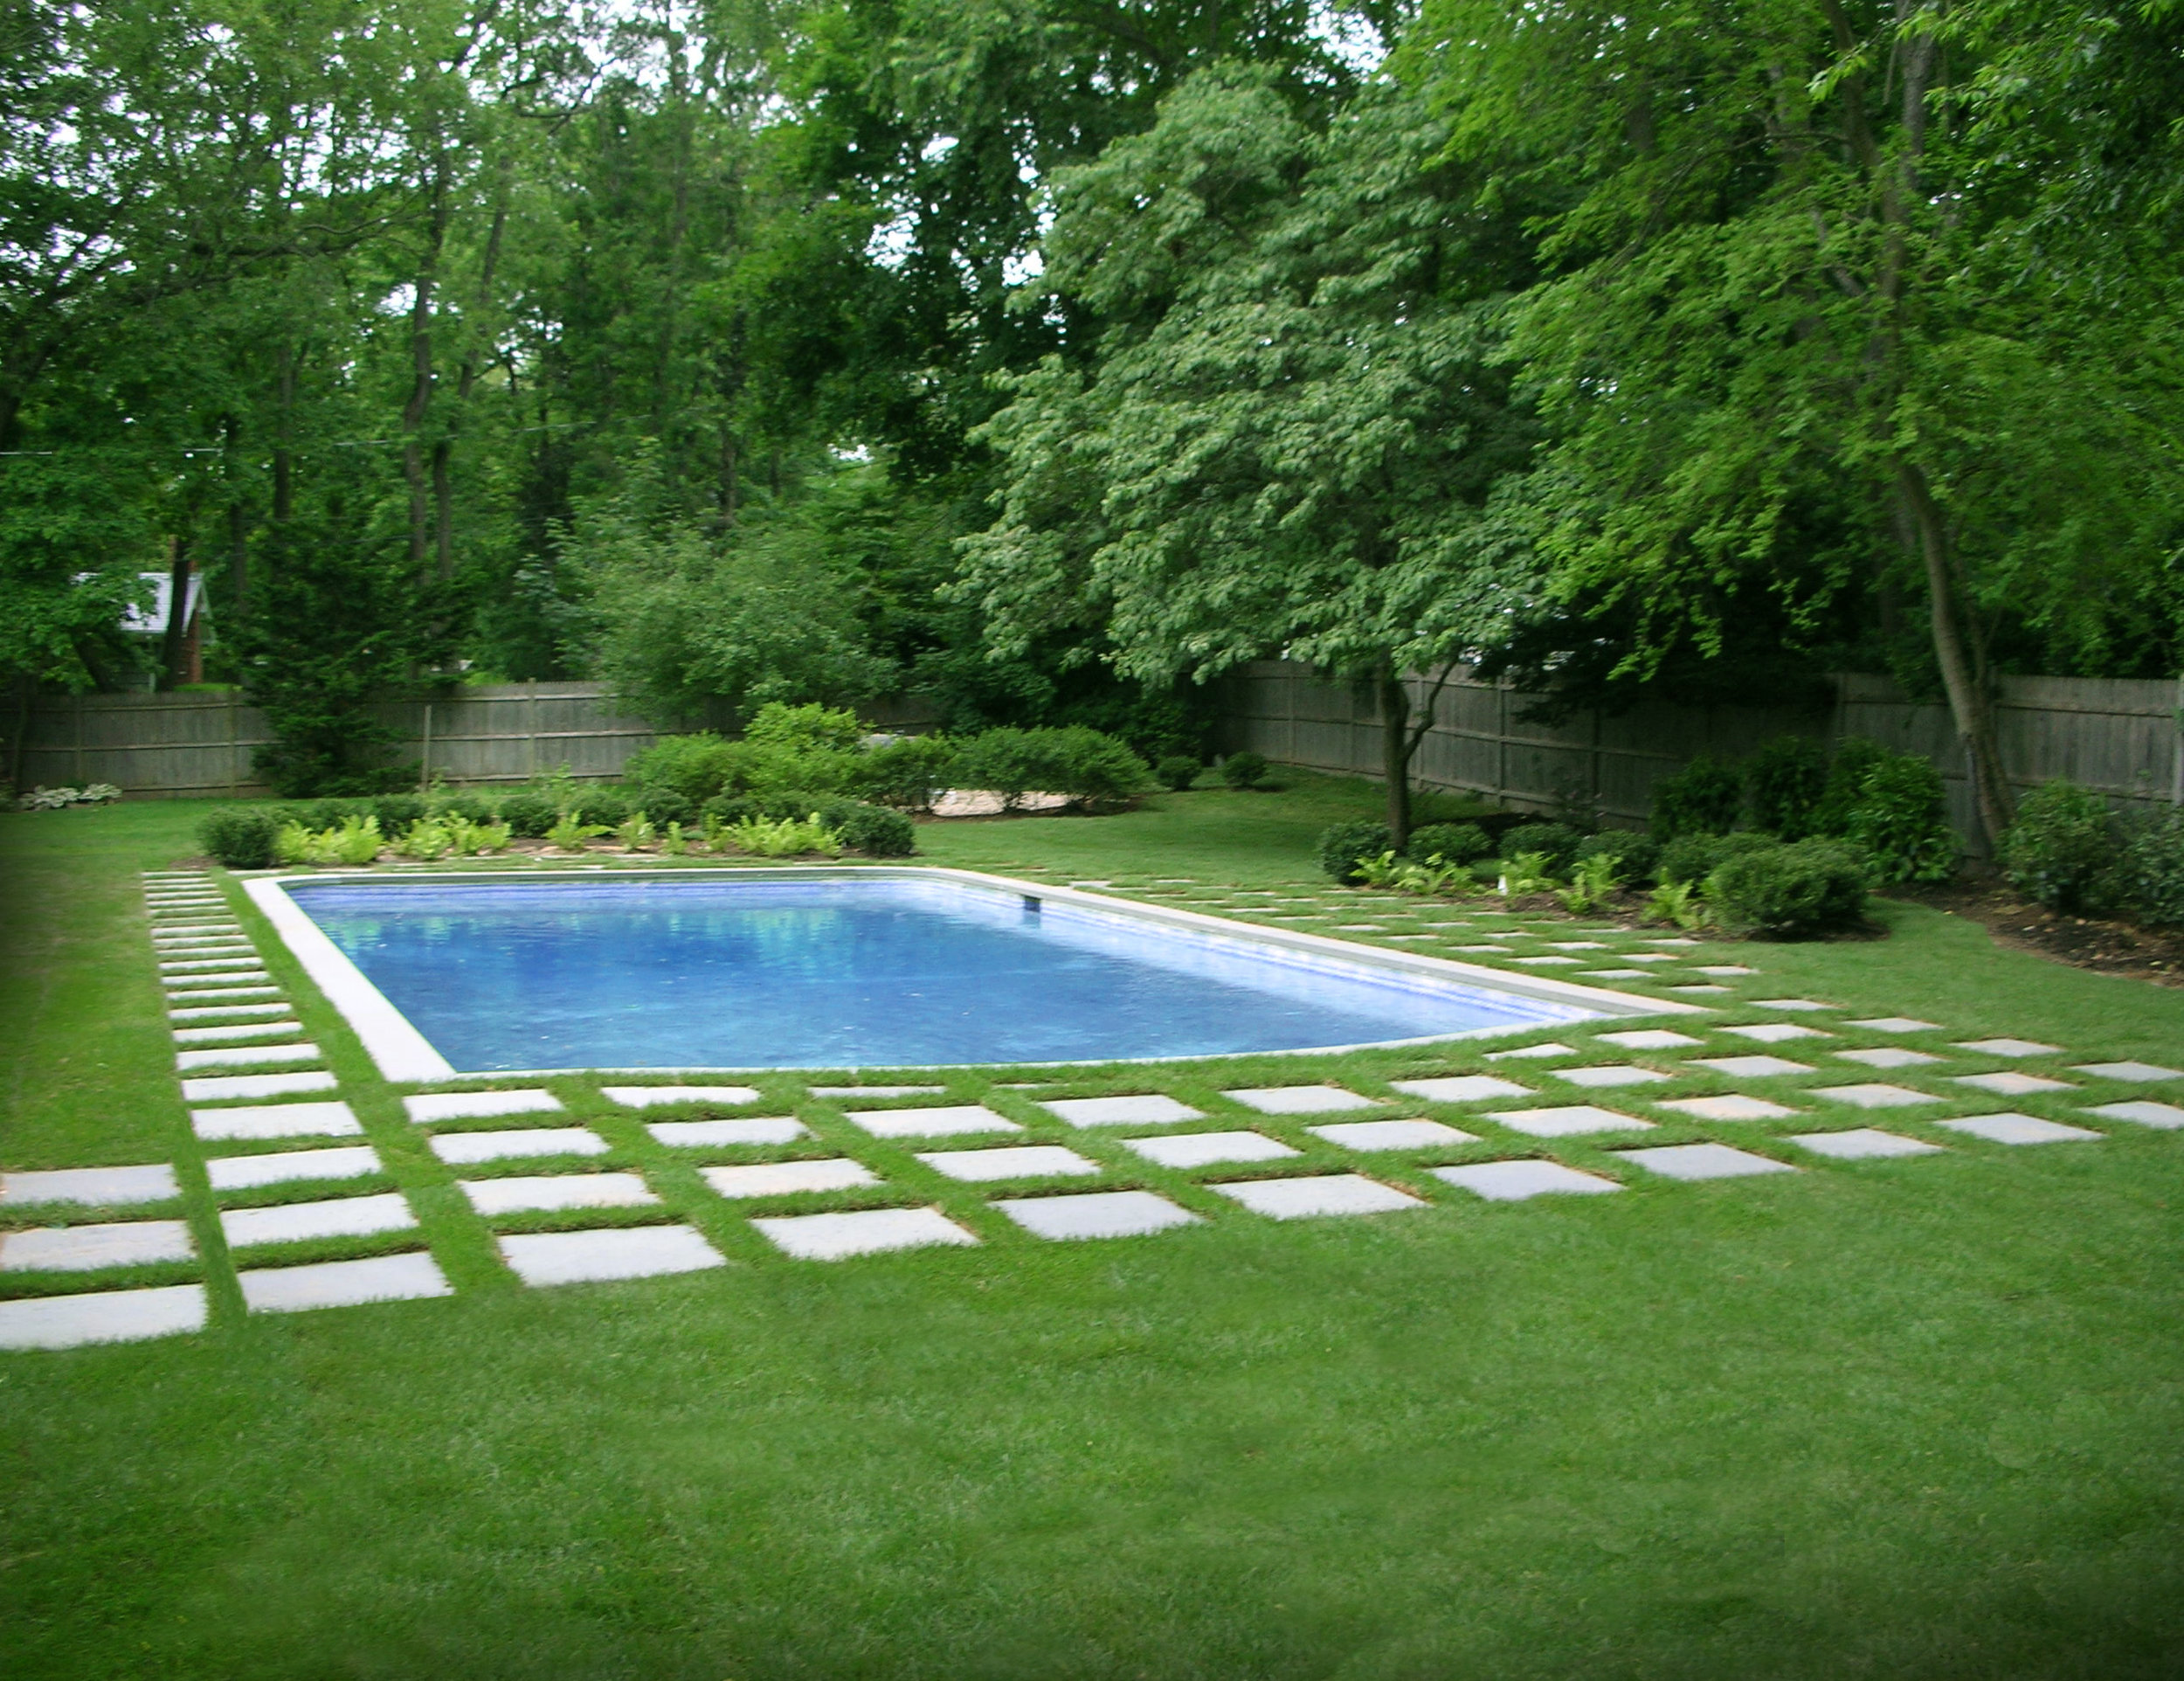 Fiberglass swimming pools in Long Island, NY